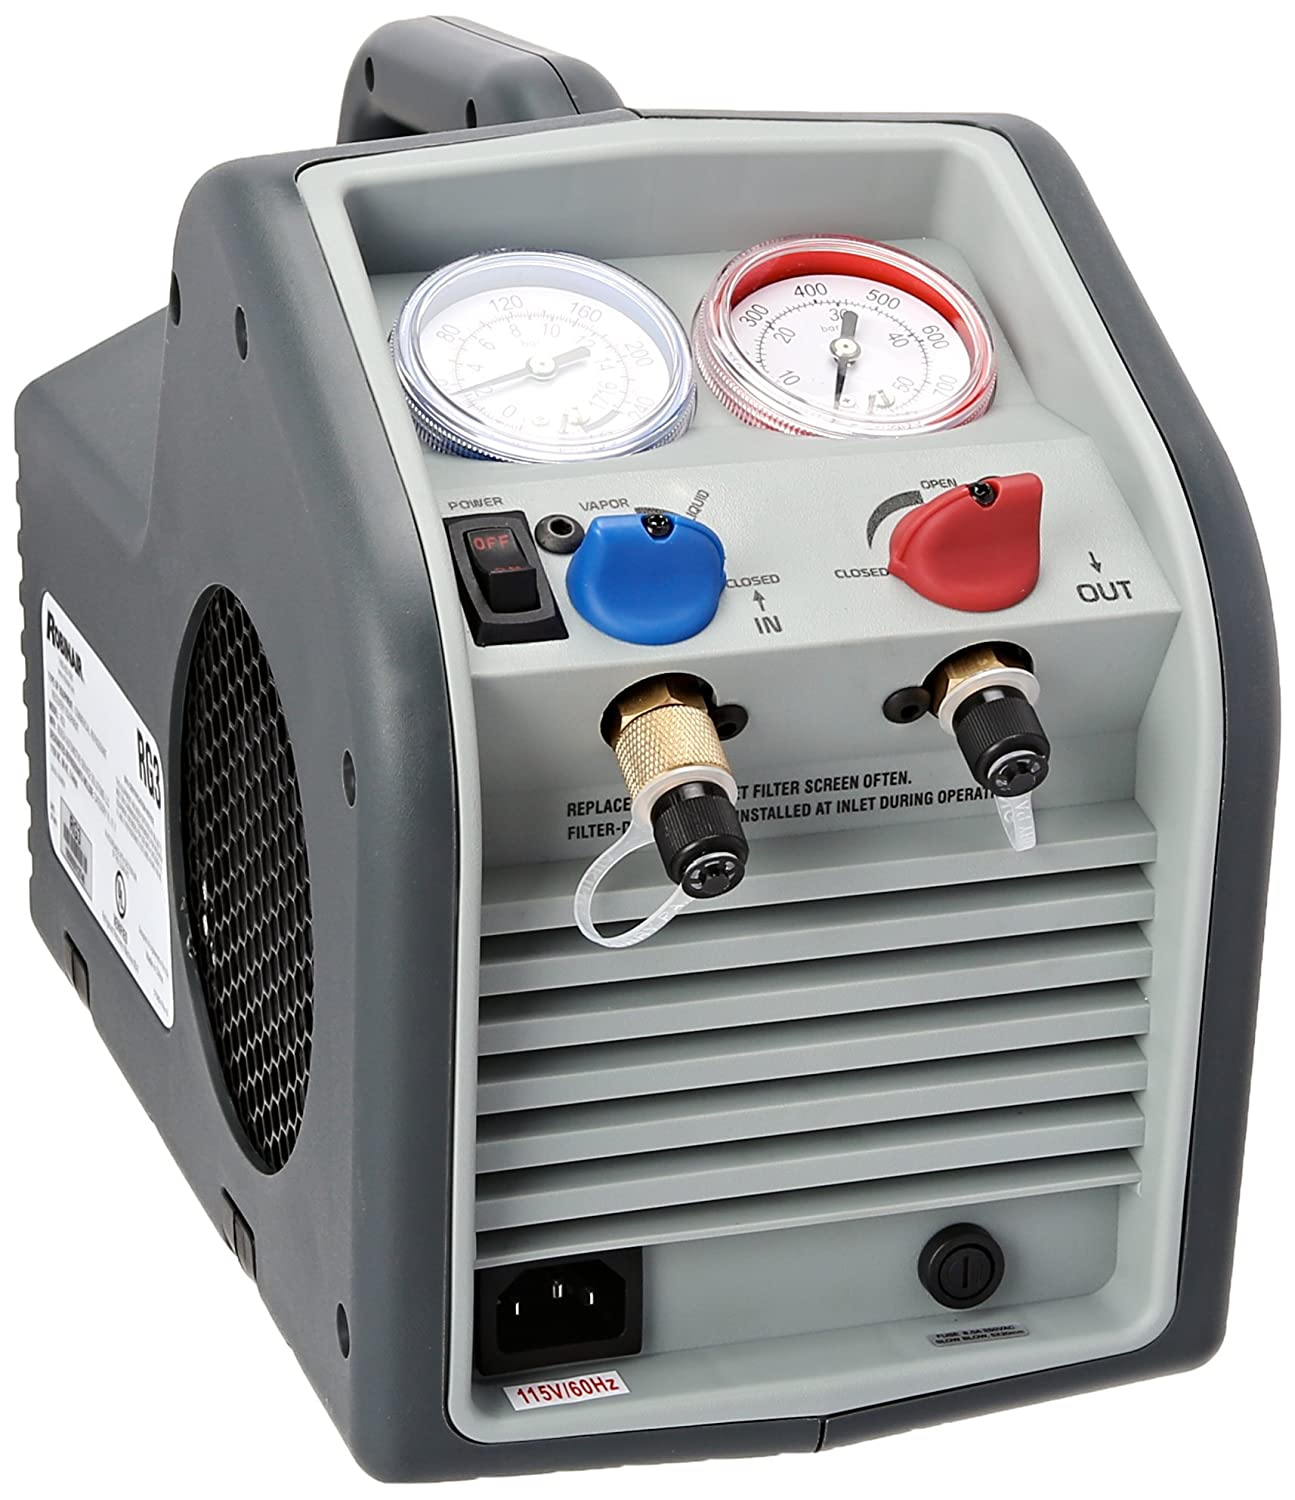 Amazon.com: Robinair RG3 Twin-Cylinder Portable Refrigerant Recovery  Machine - 115V AC, 60 Hz: Automotive